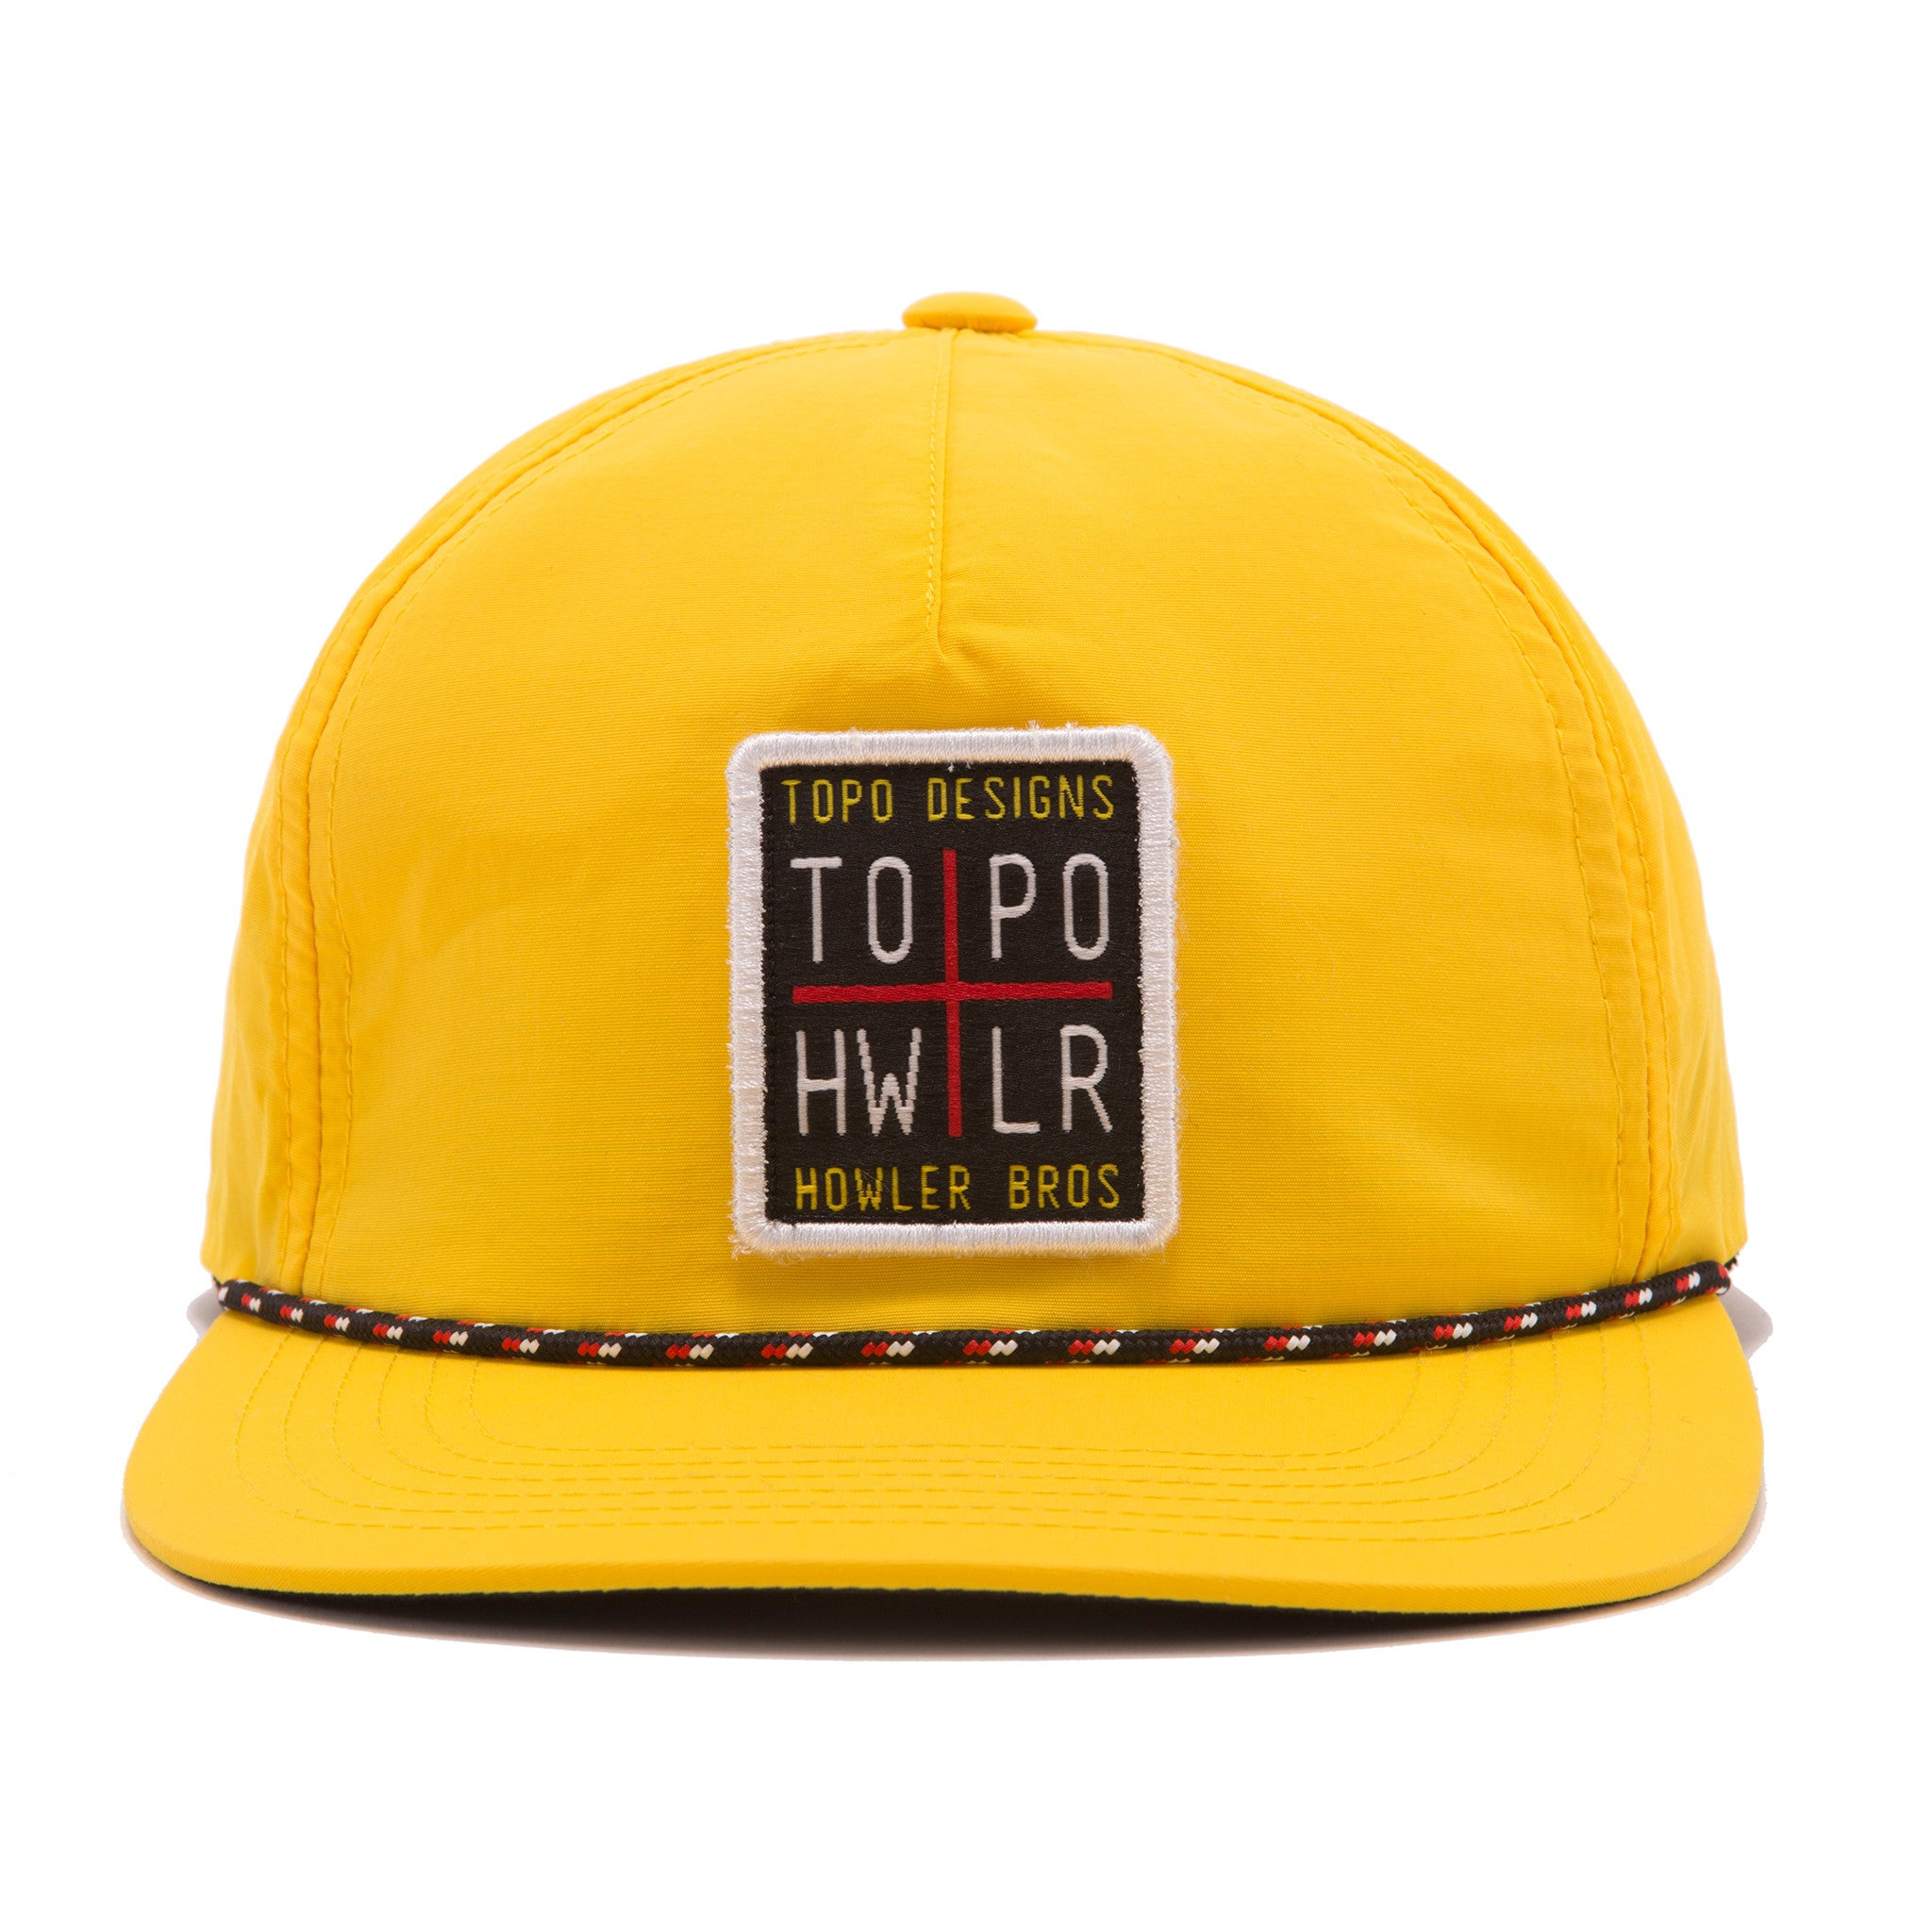 Accessories - Topo Designs X Howler Brothers reg  Nylon Snapback Hat 0ded15729d5